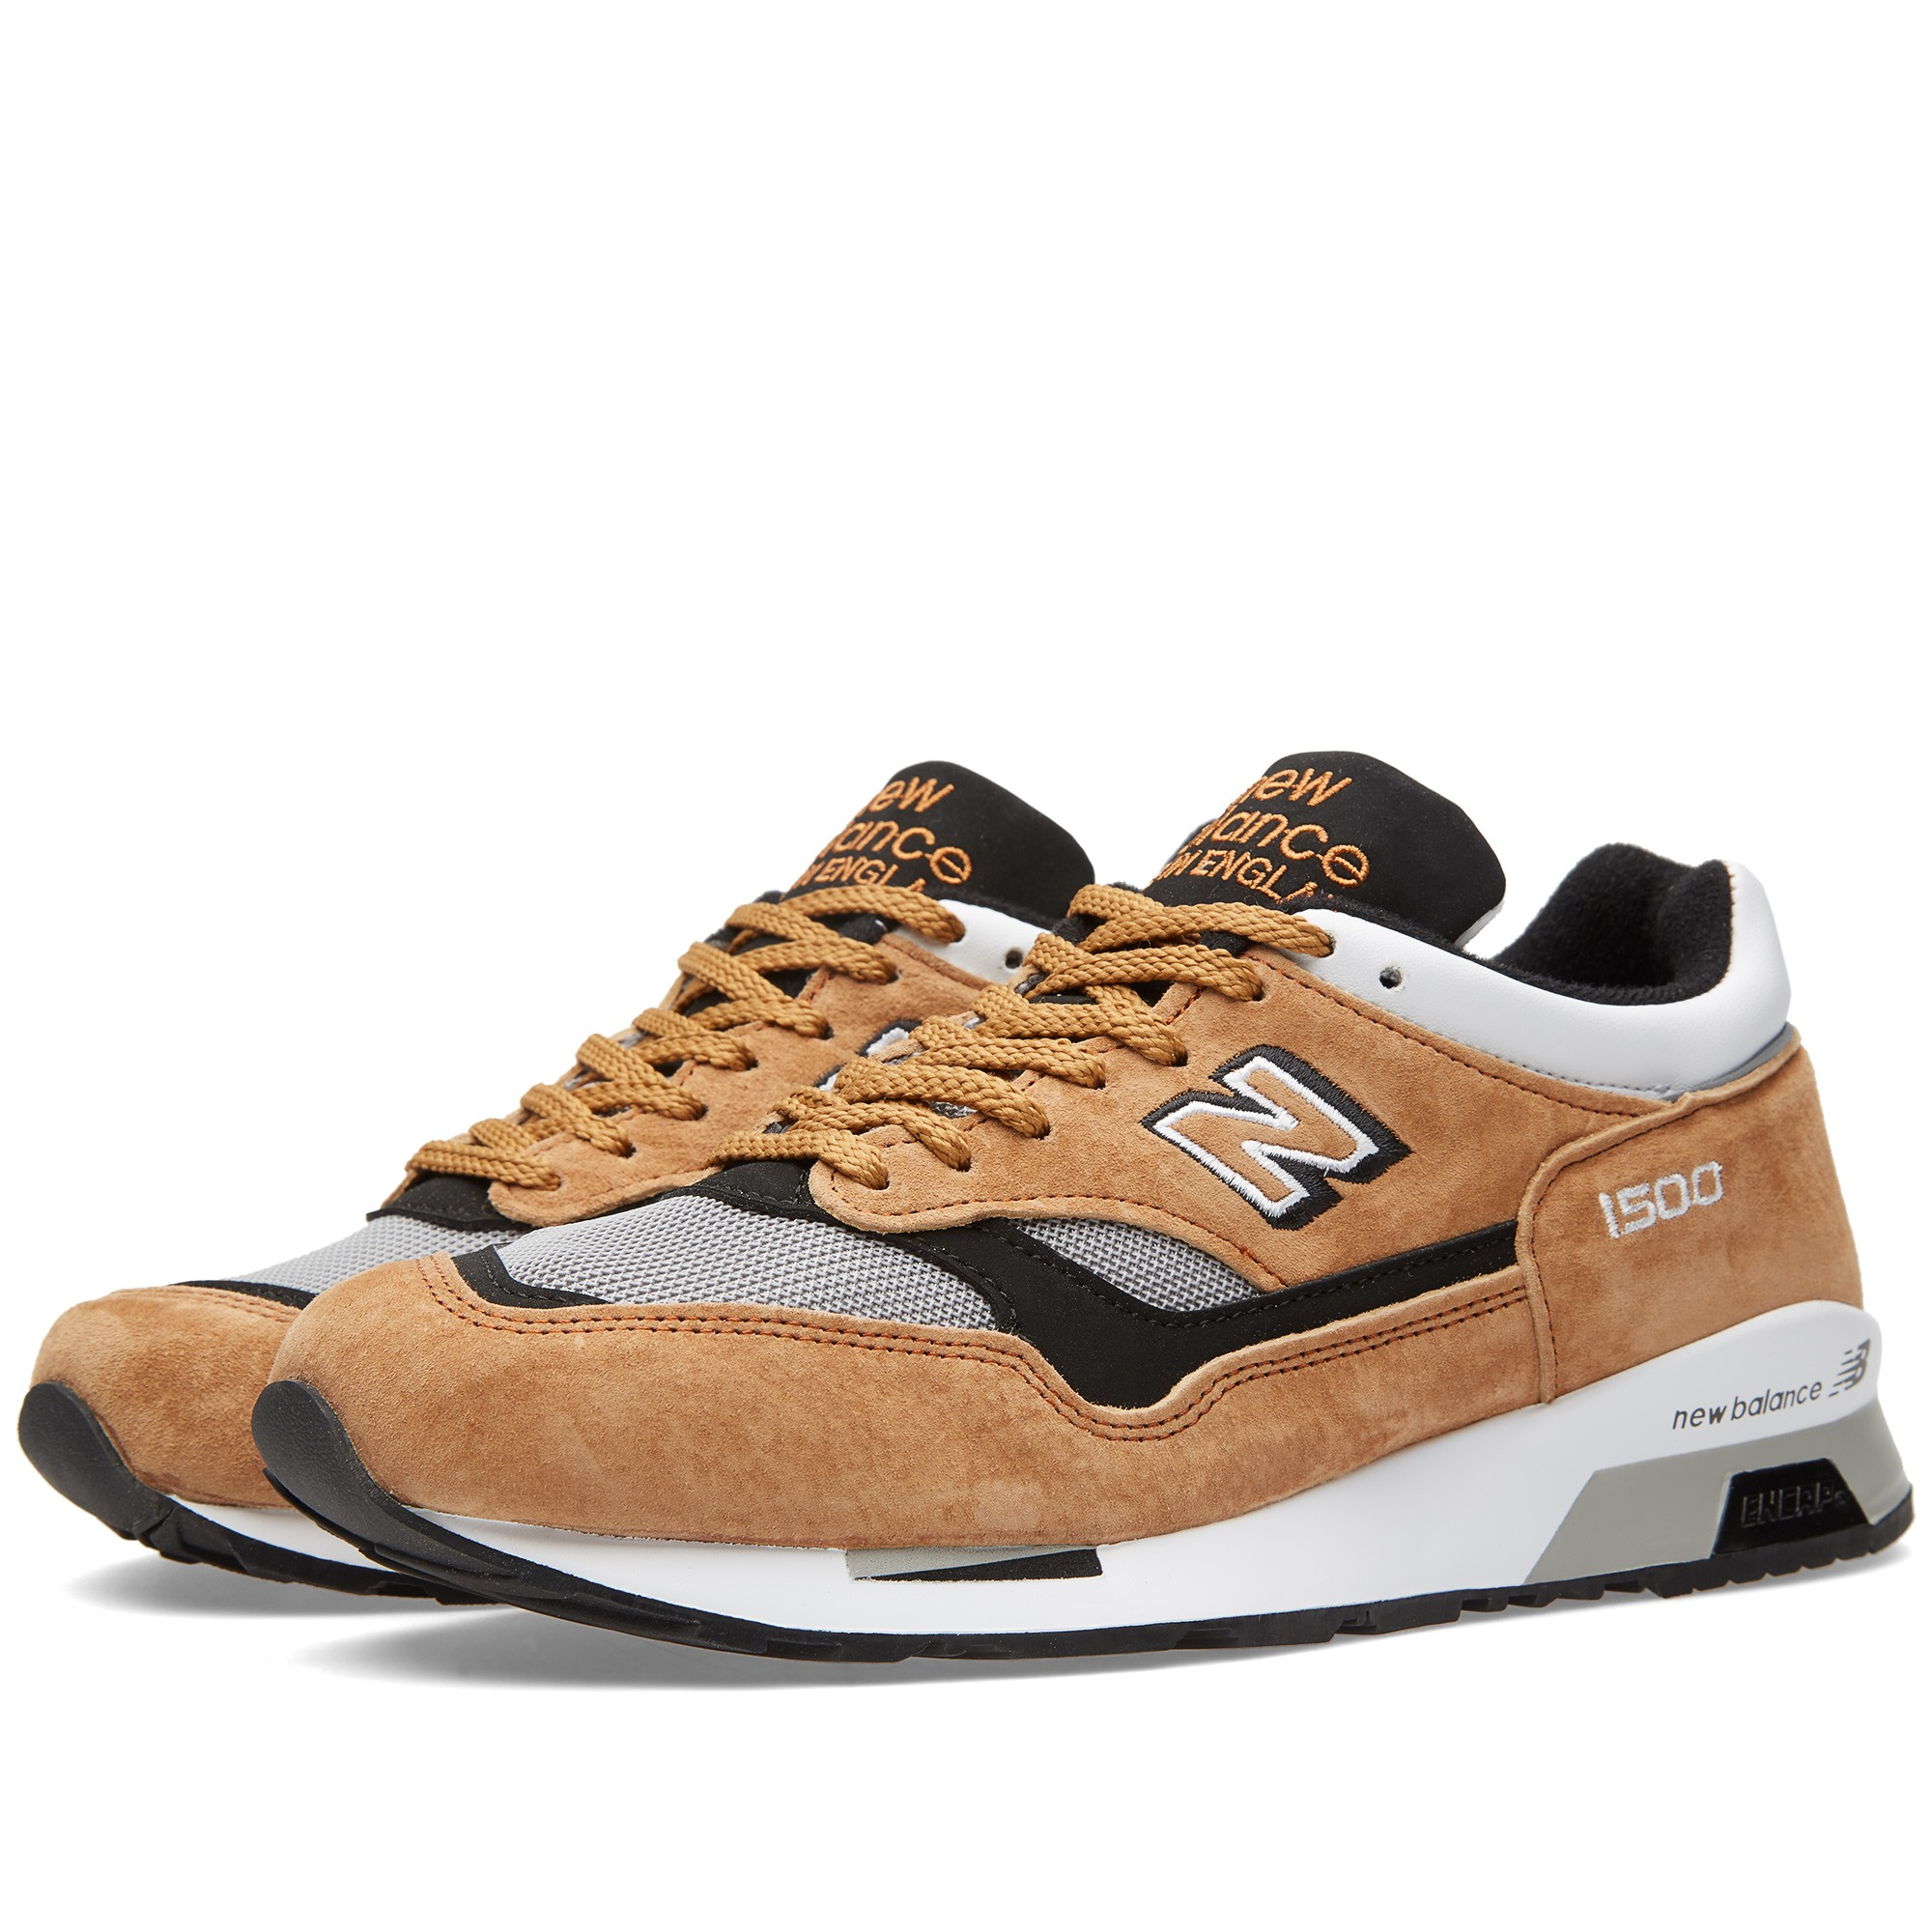 reputable site 635f0 77209 New Balance M1500ST - Made in England by New Balance